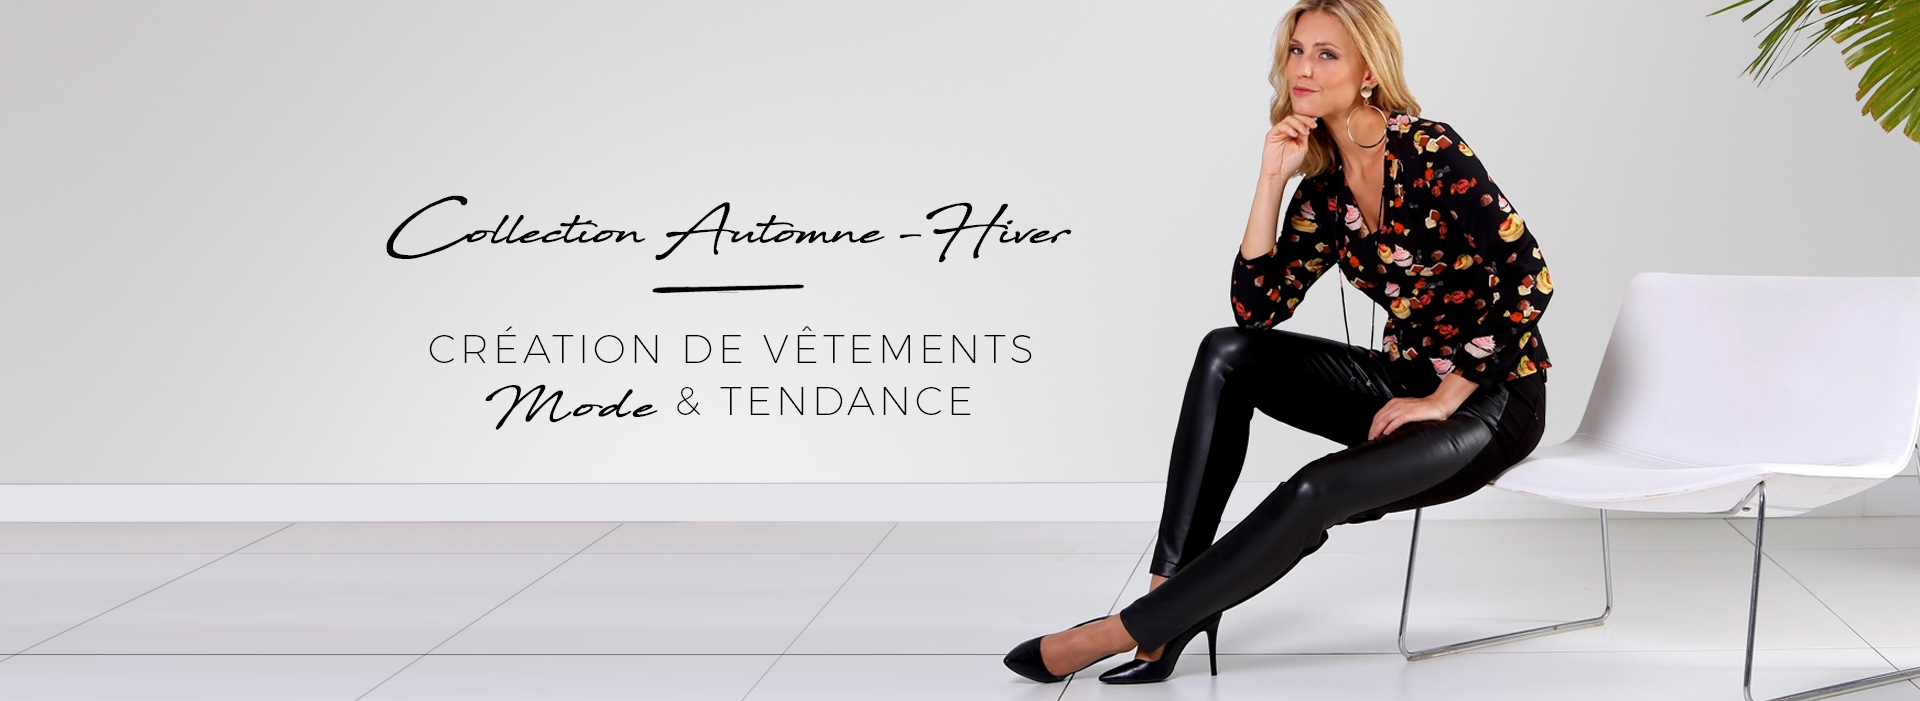 Collection Automne/Hiver